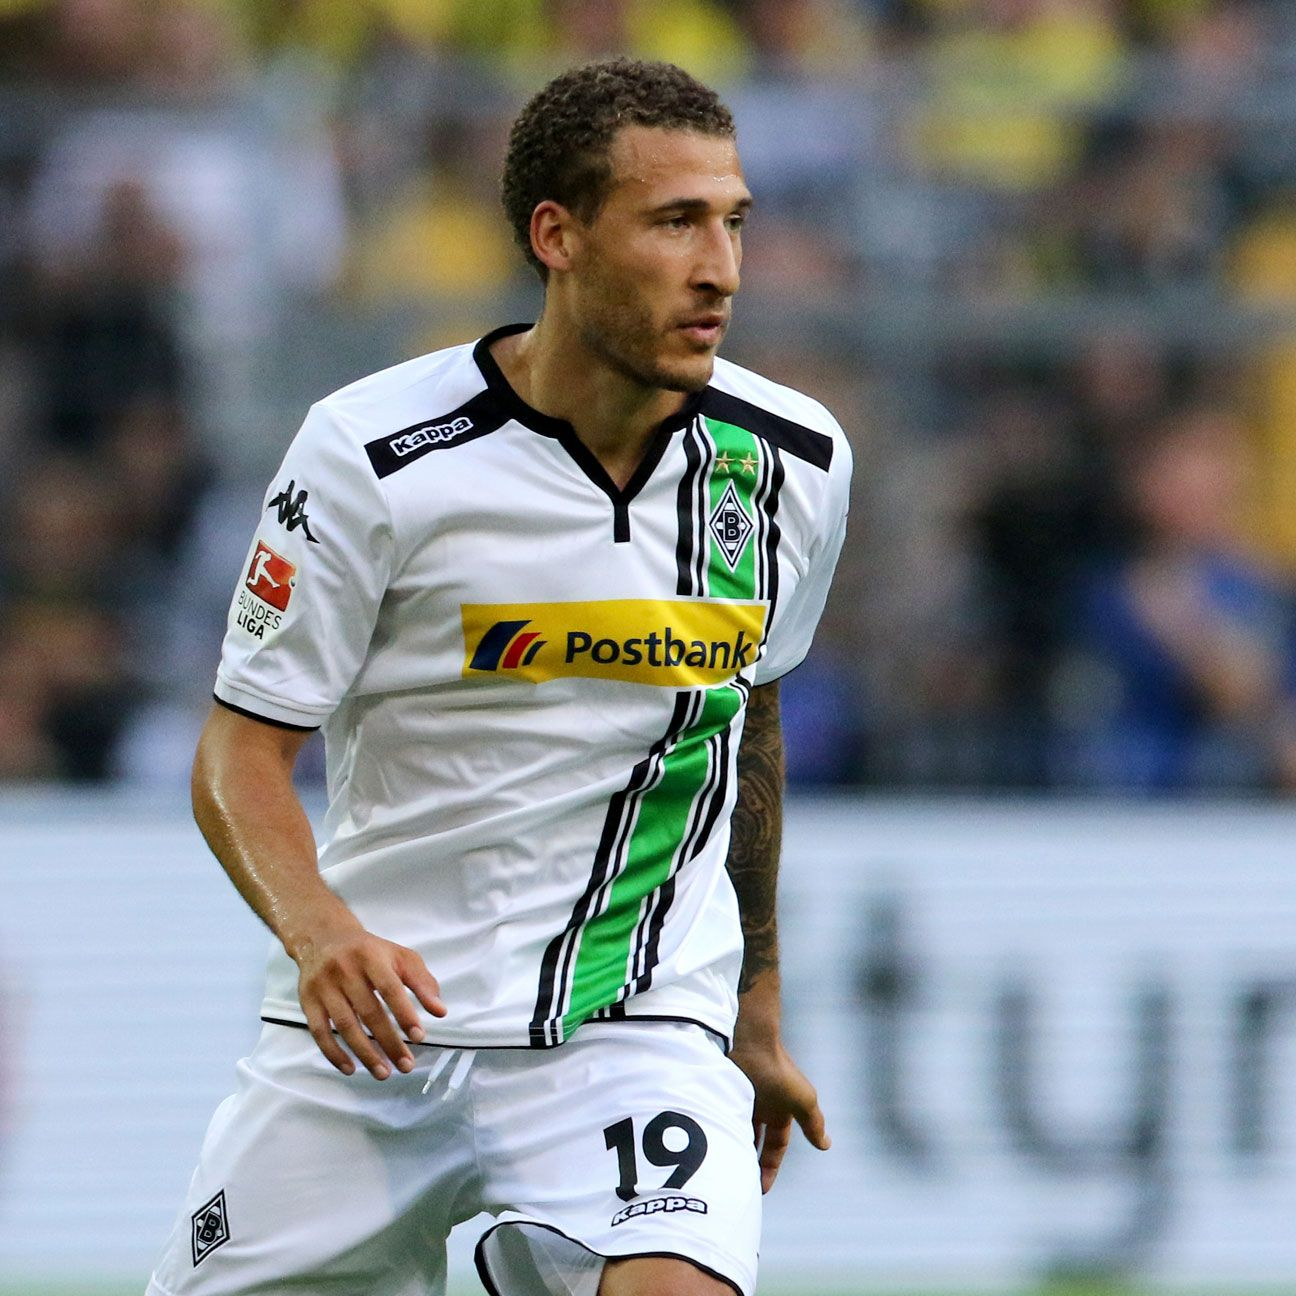 Fabian Johnson has been in fine form for Borussia Monchengladbach, with four goals in his last six games.